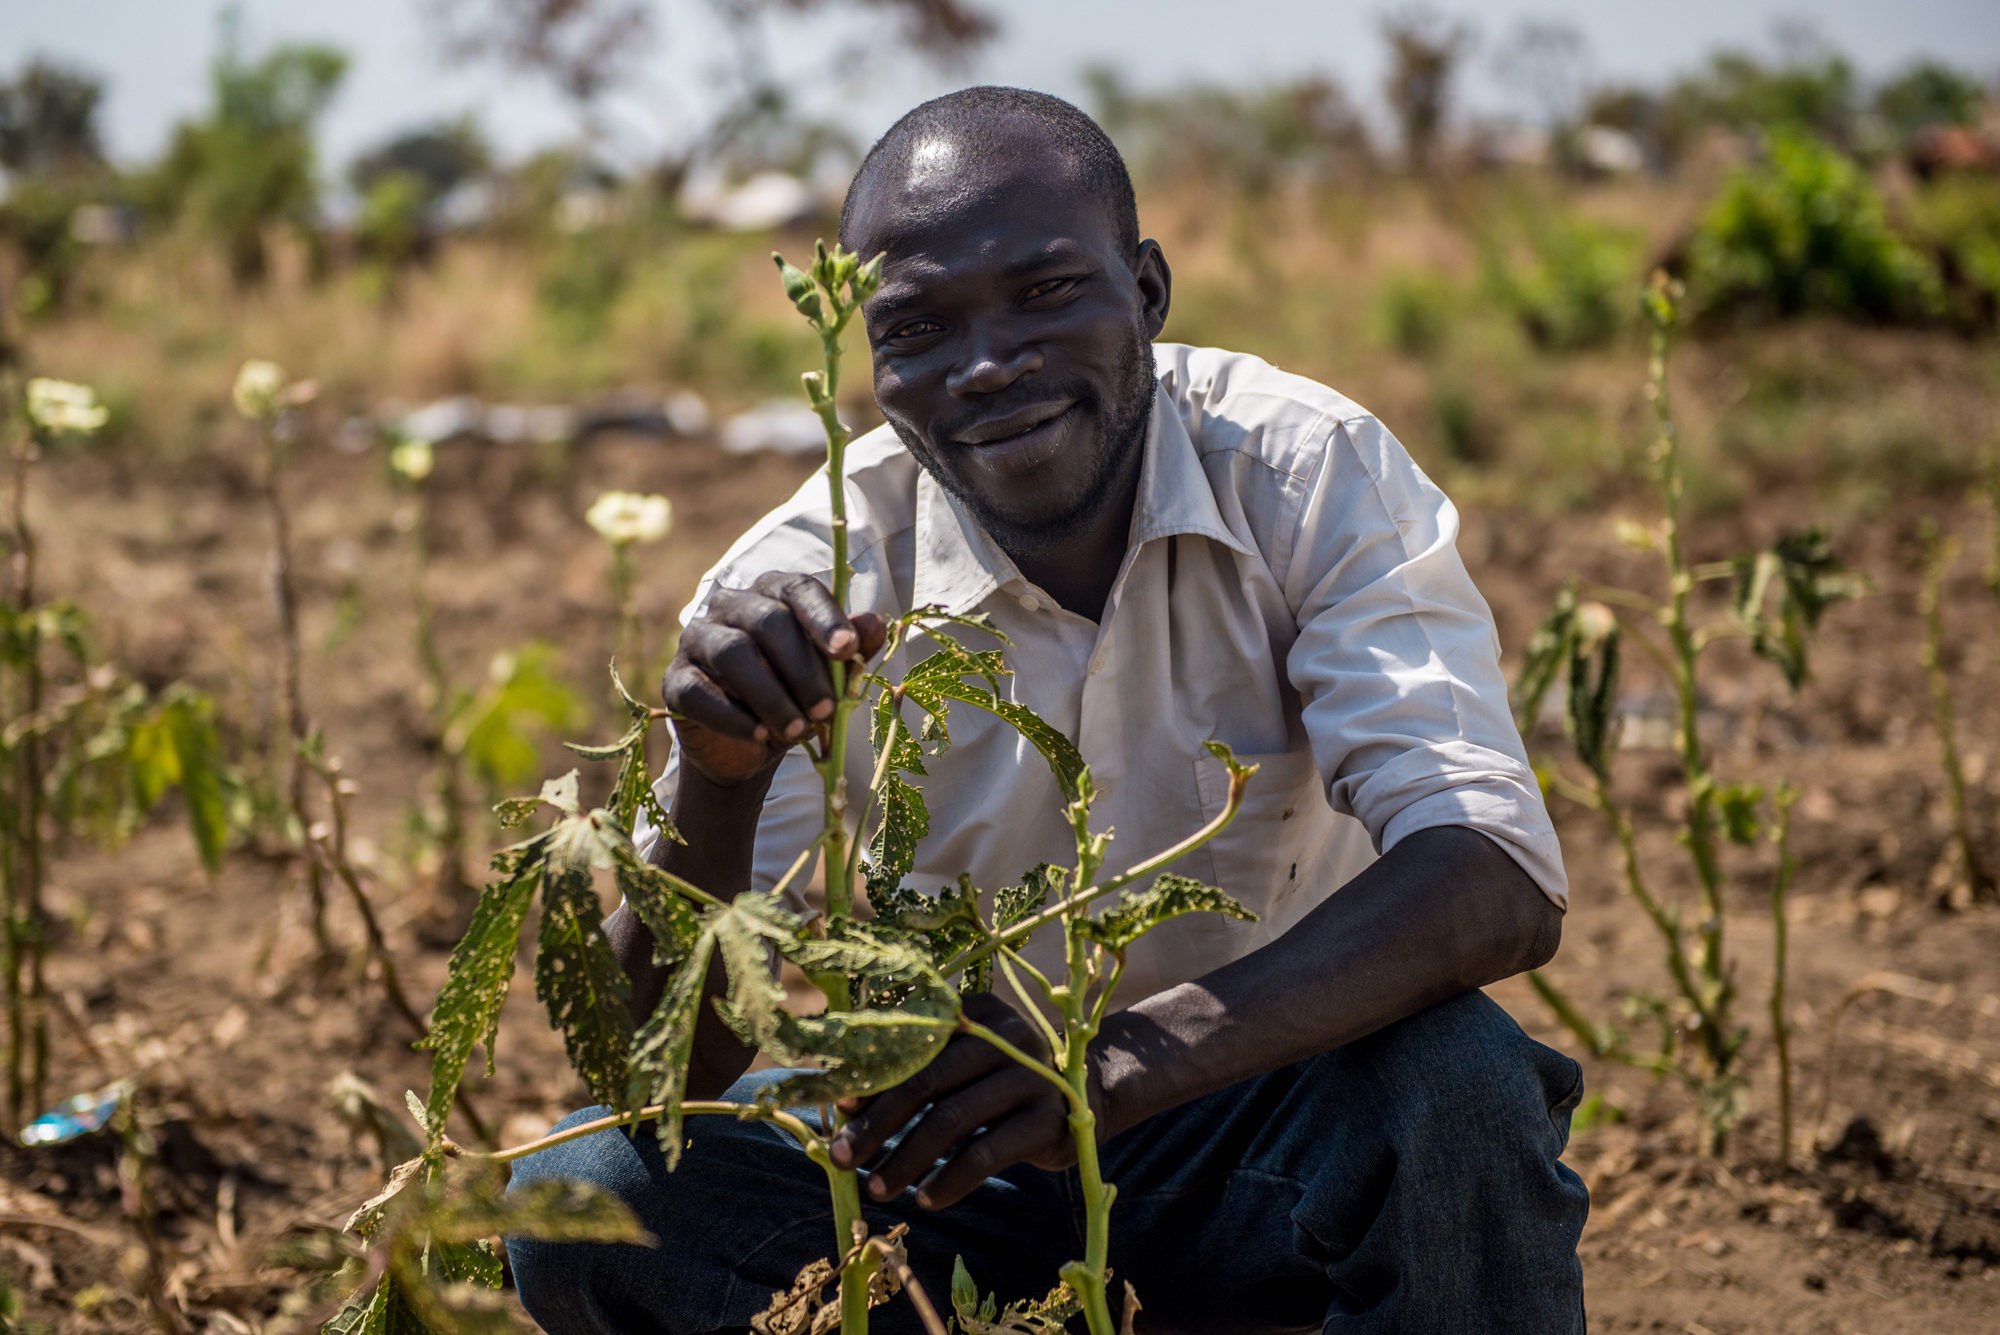 Malis from South Sudan planted okra seeds gievn to him by Caritas Uganda